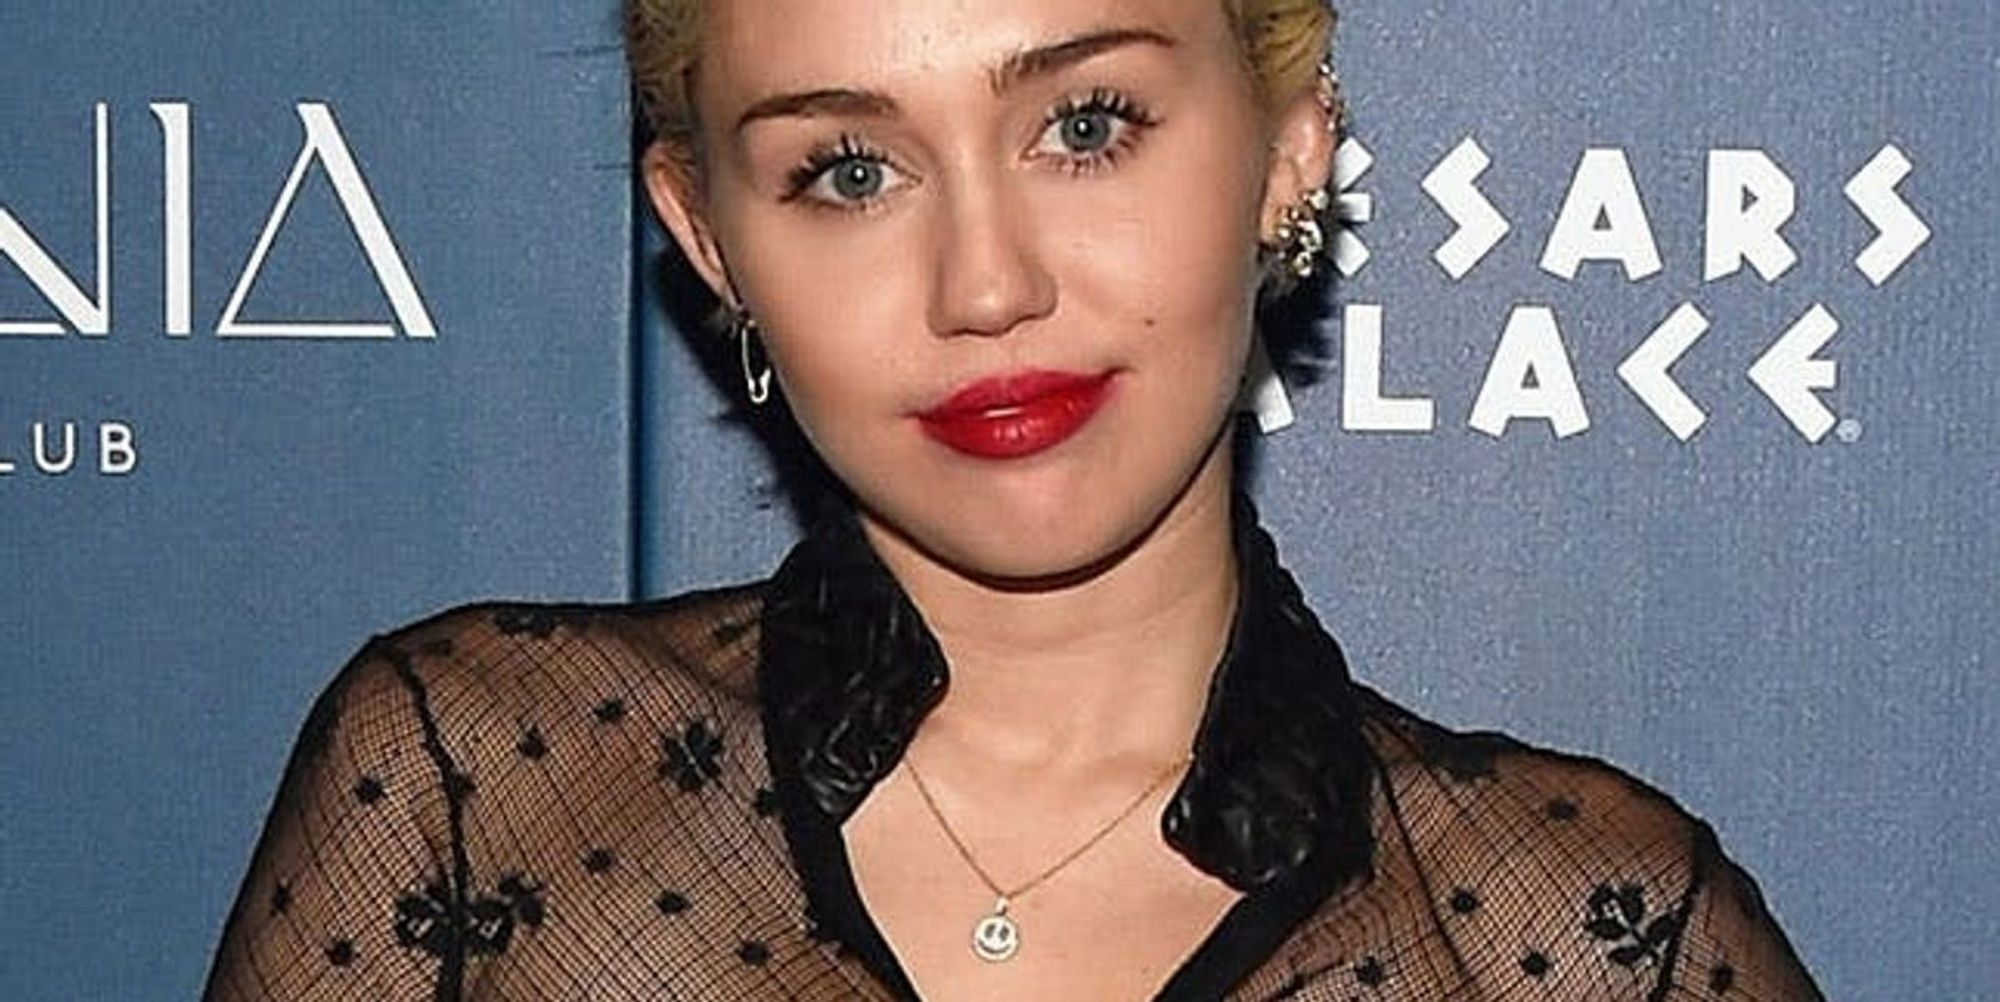 Miley Cyrus Has a Genius Hack for Covering Up Zits - Brit + Co